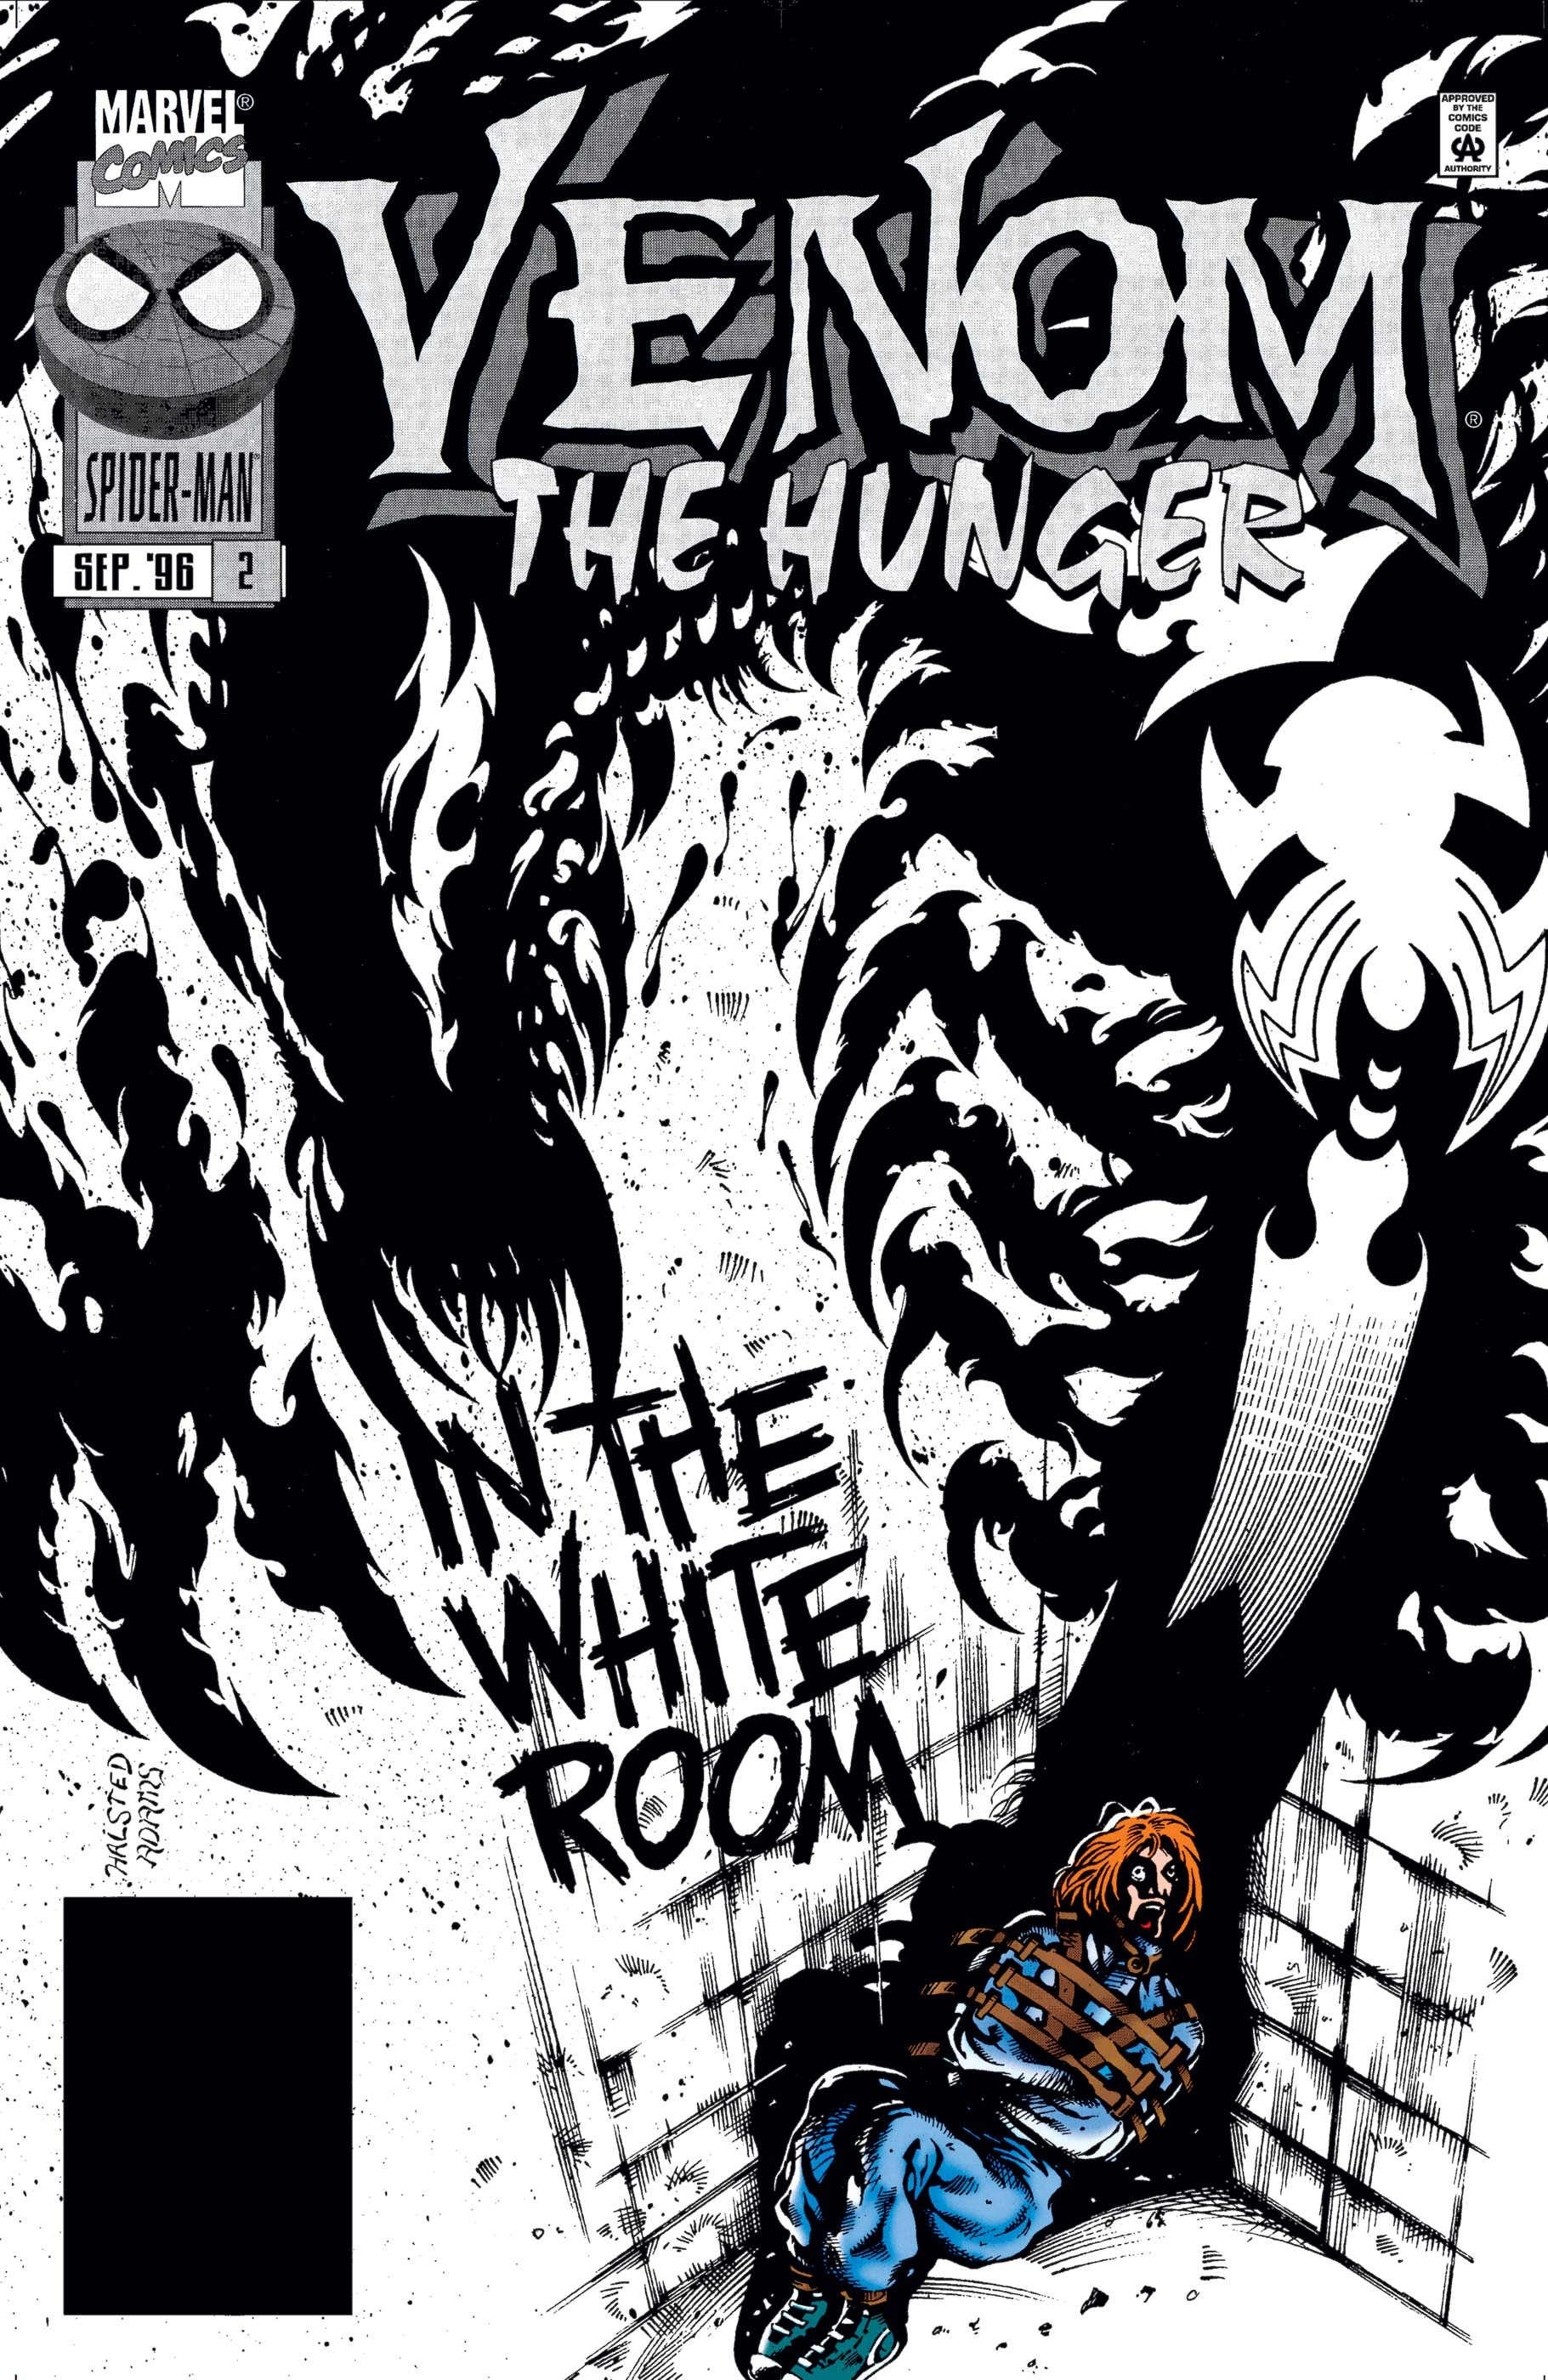 Venom: The Hunger (1996) #2